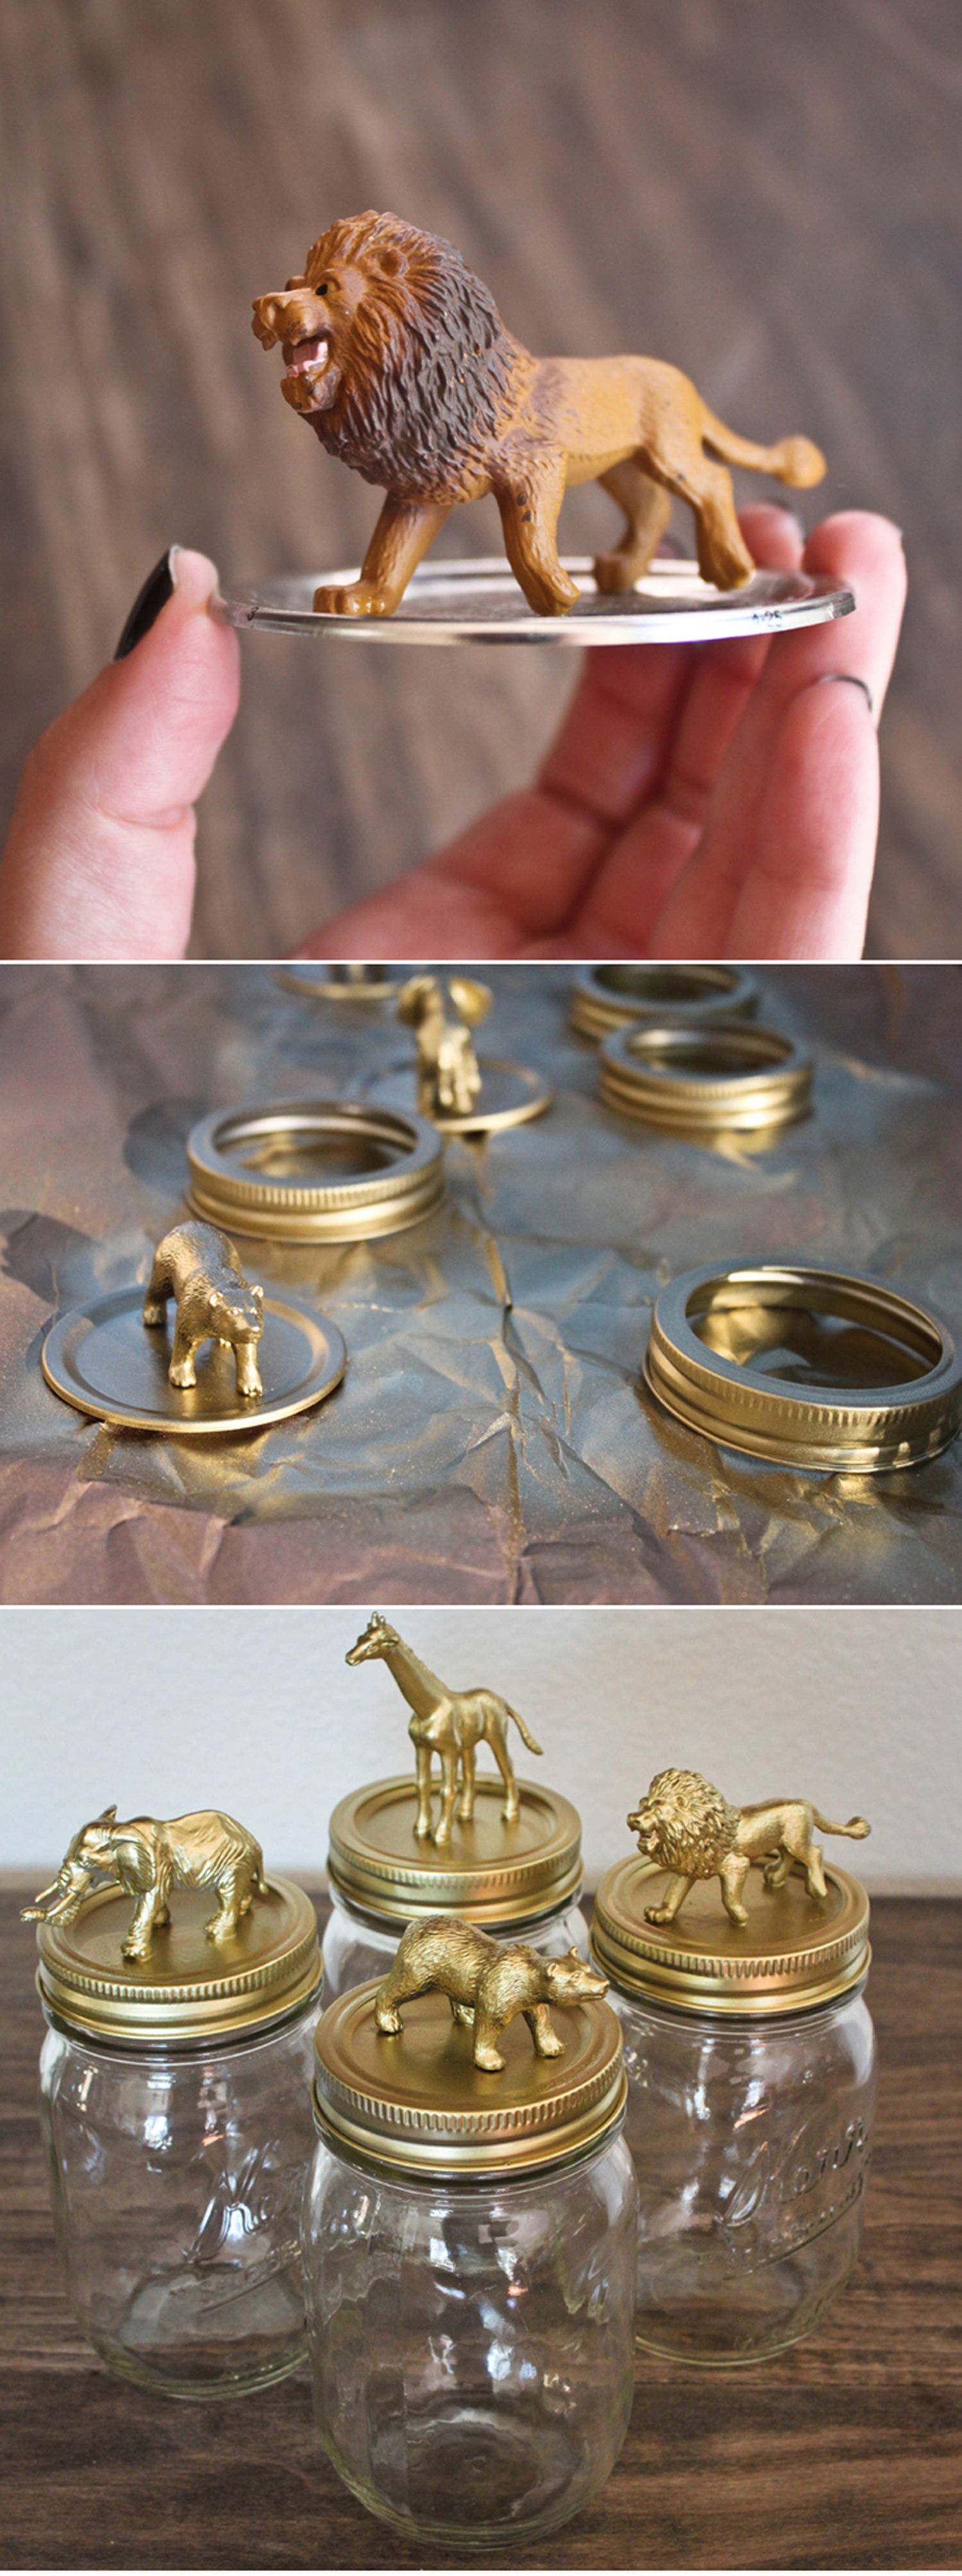 Create: Golden Safari Mason Jar Caps | www.gigglingcaravan.com/